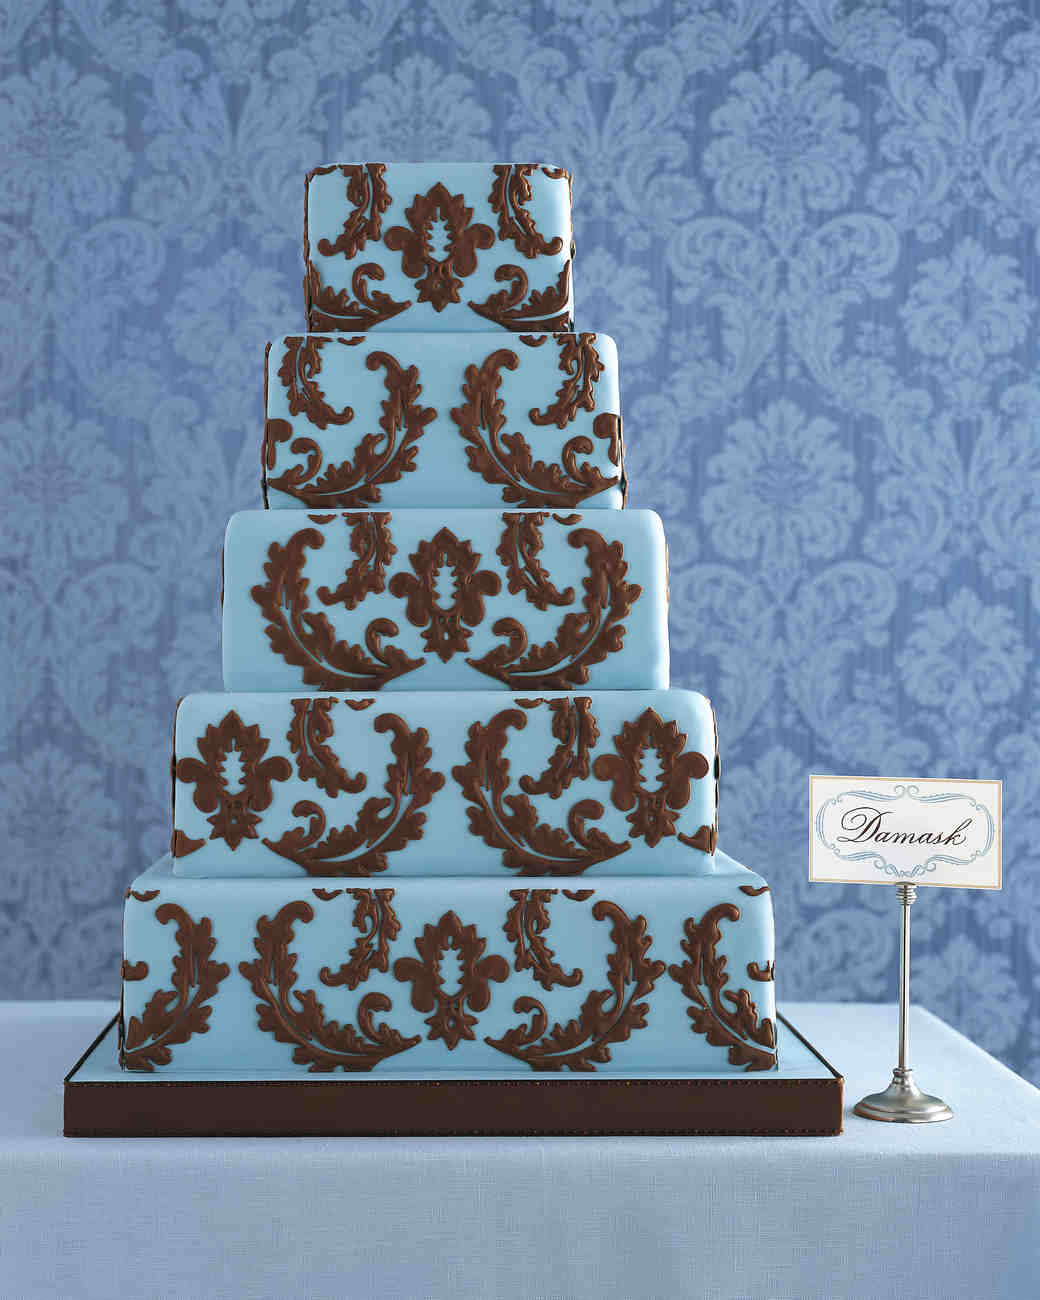 chocolate-cake-ideas-mw0405wela8-damask-1114.jpg